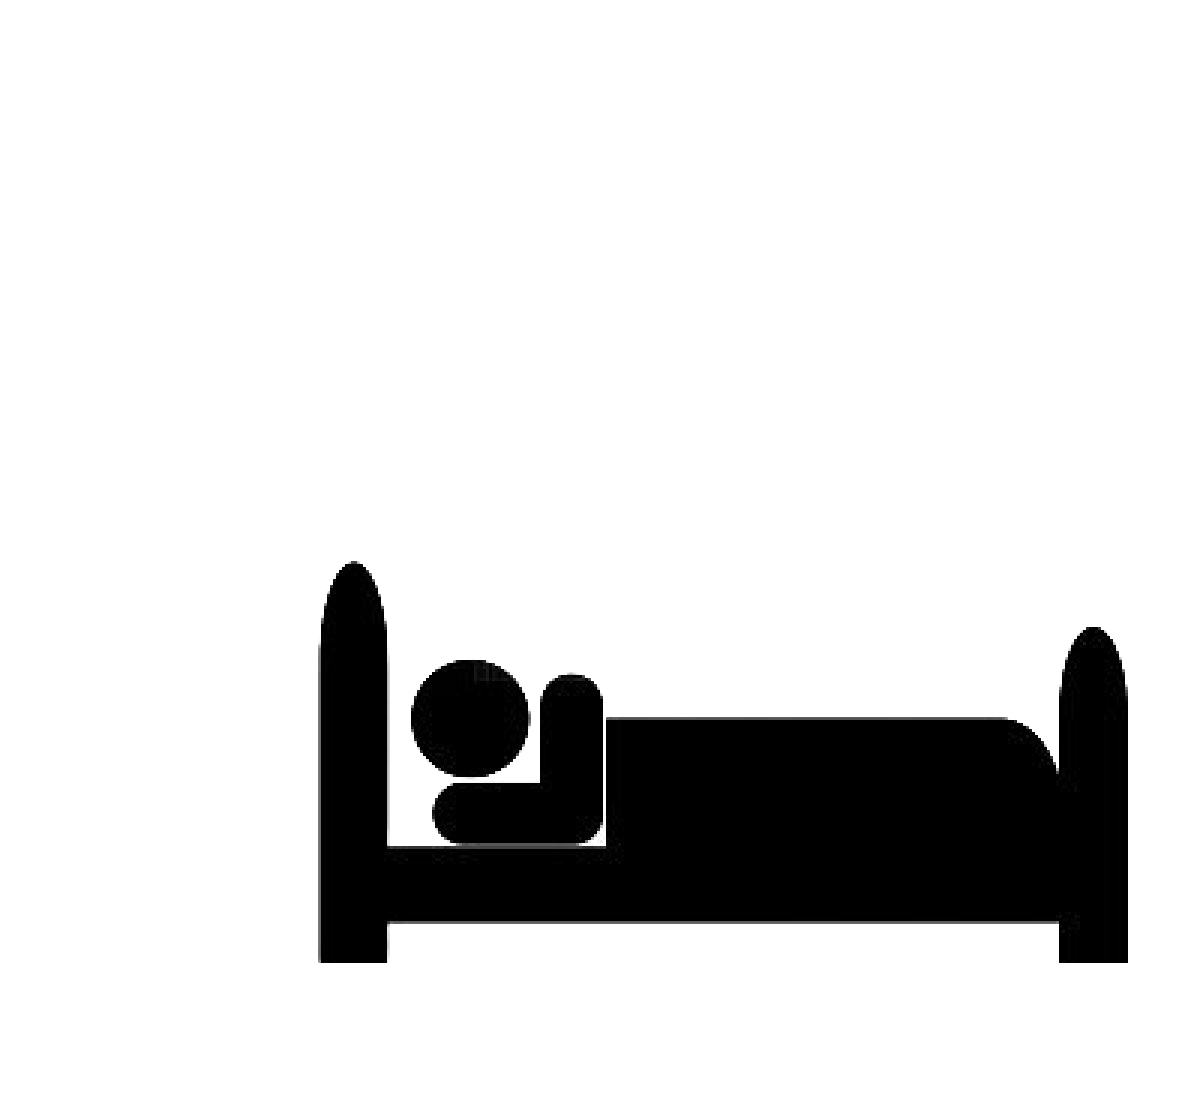 Svg Bedroom Icon image #35974